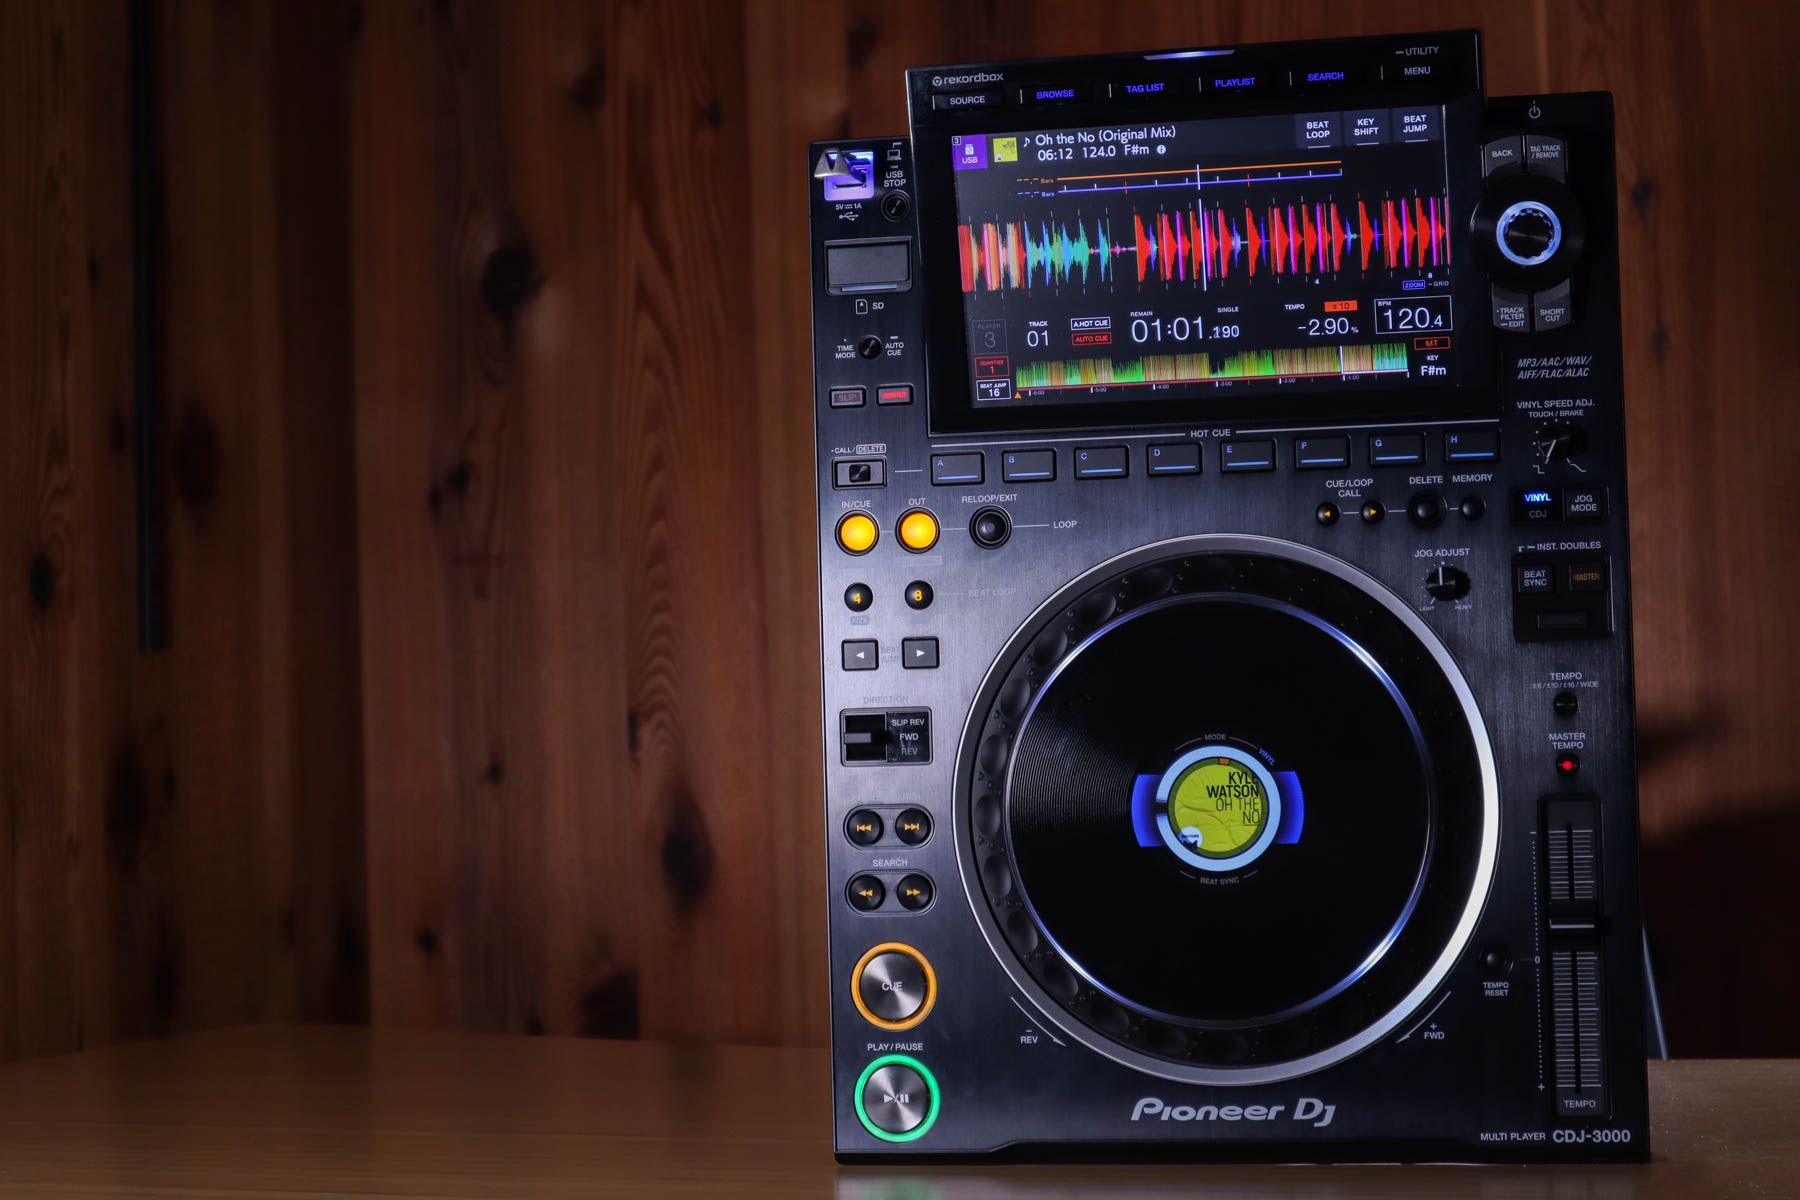 CDJ-3000 vs 2020: review + analysis of Pioneer DJ's new player